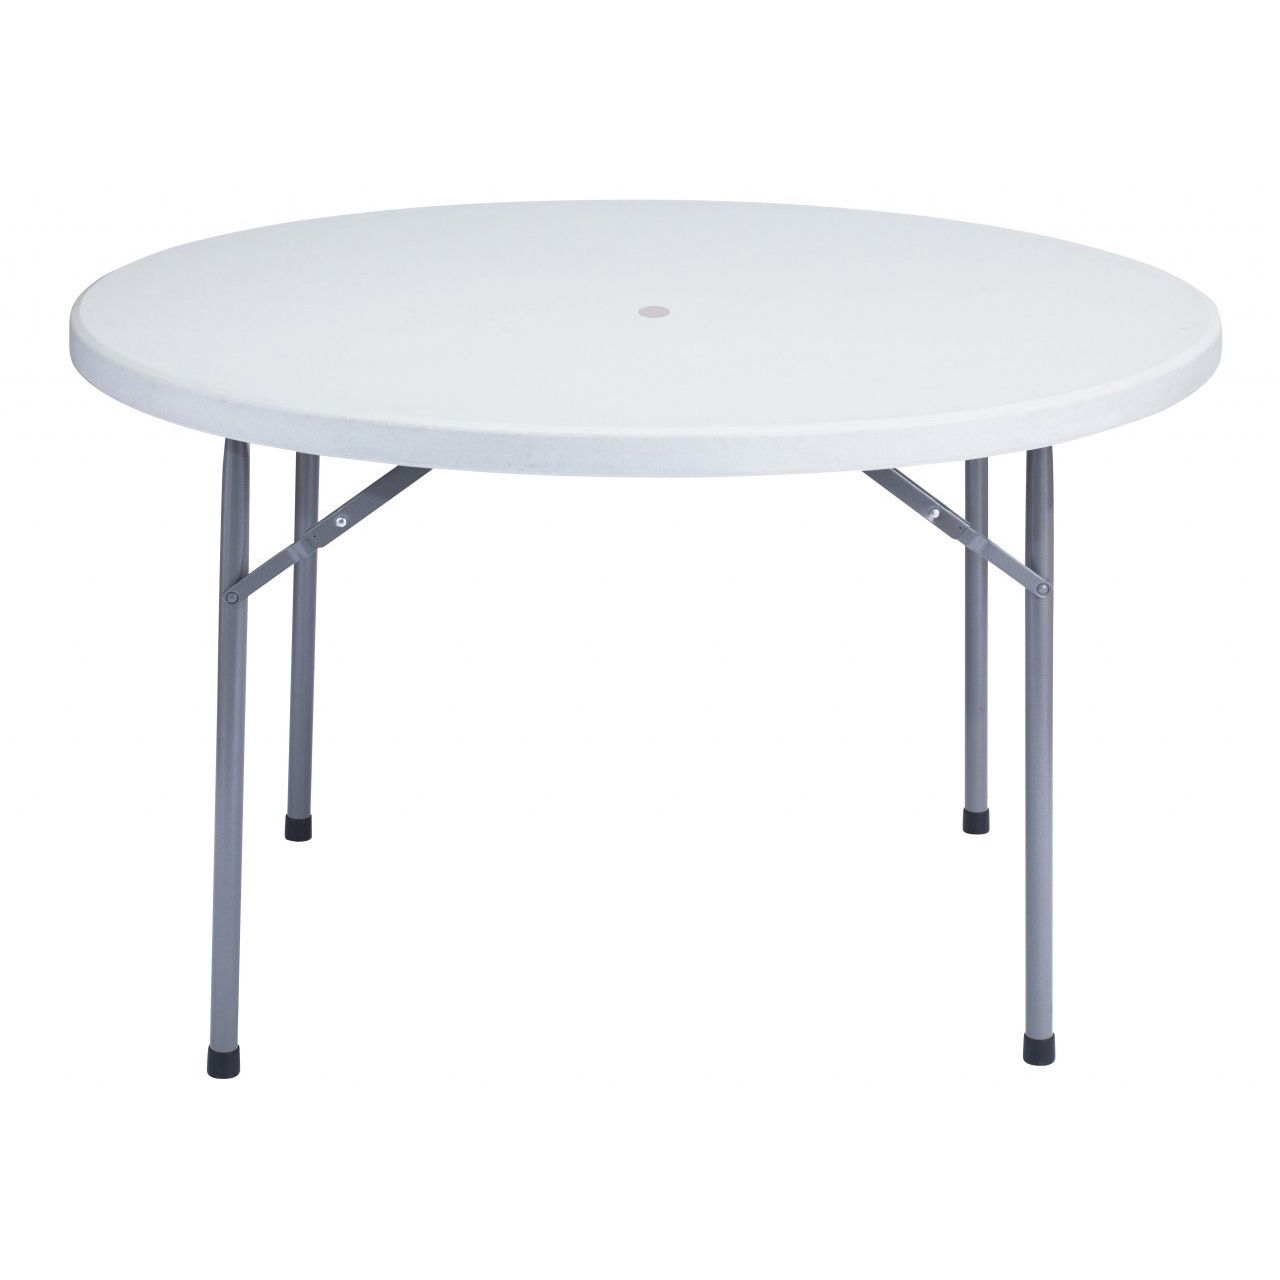 48 round plastic folding table with